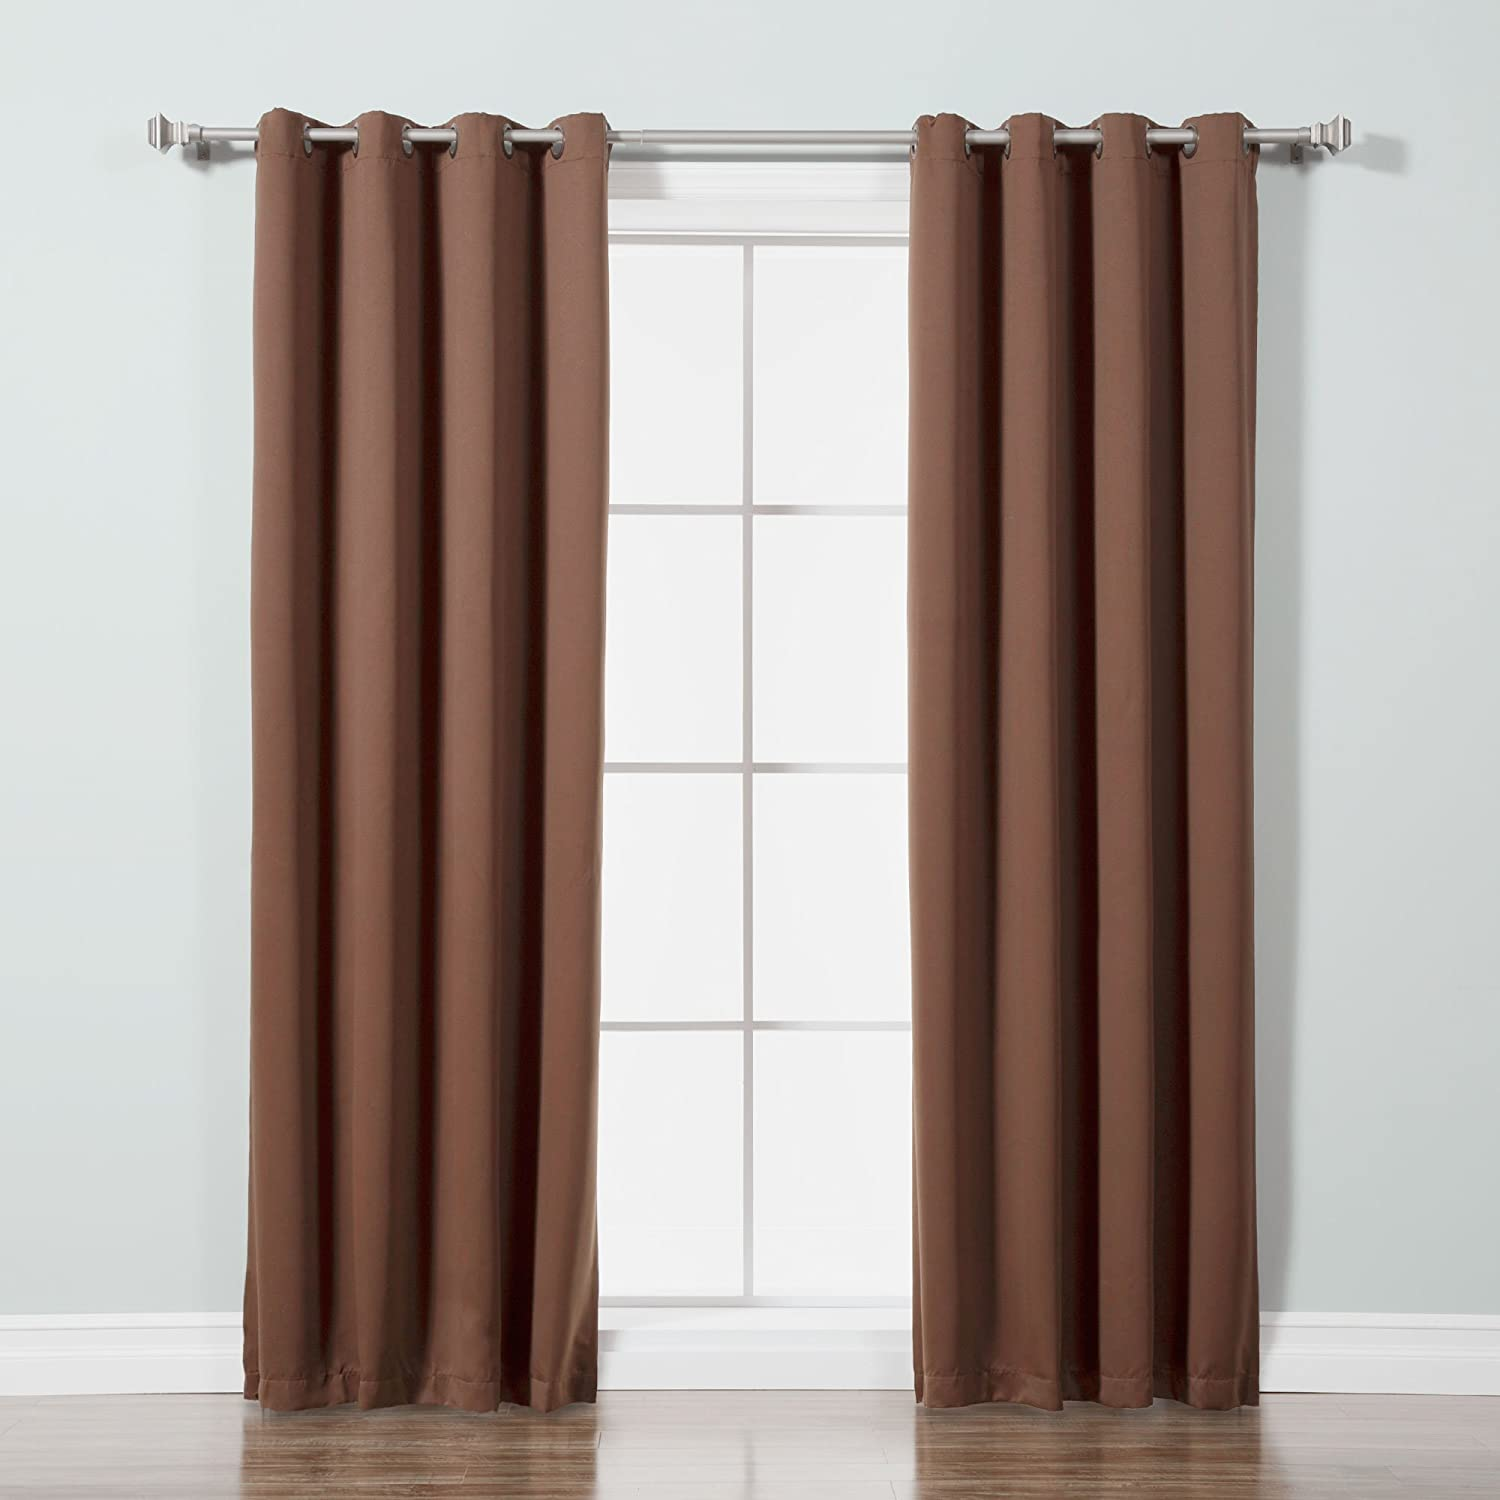 Best Home Fashion Thermal Insulated Curtains